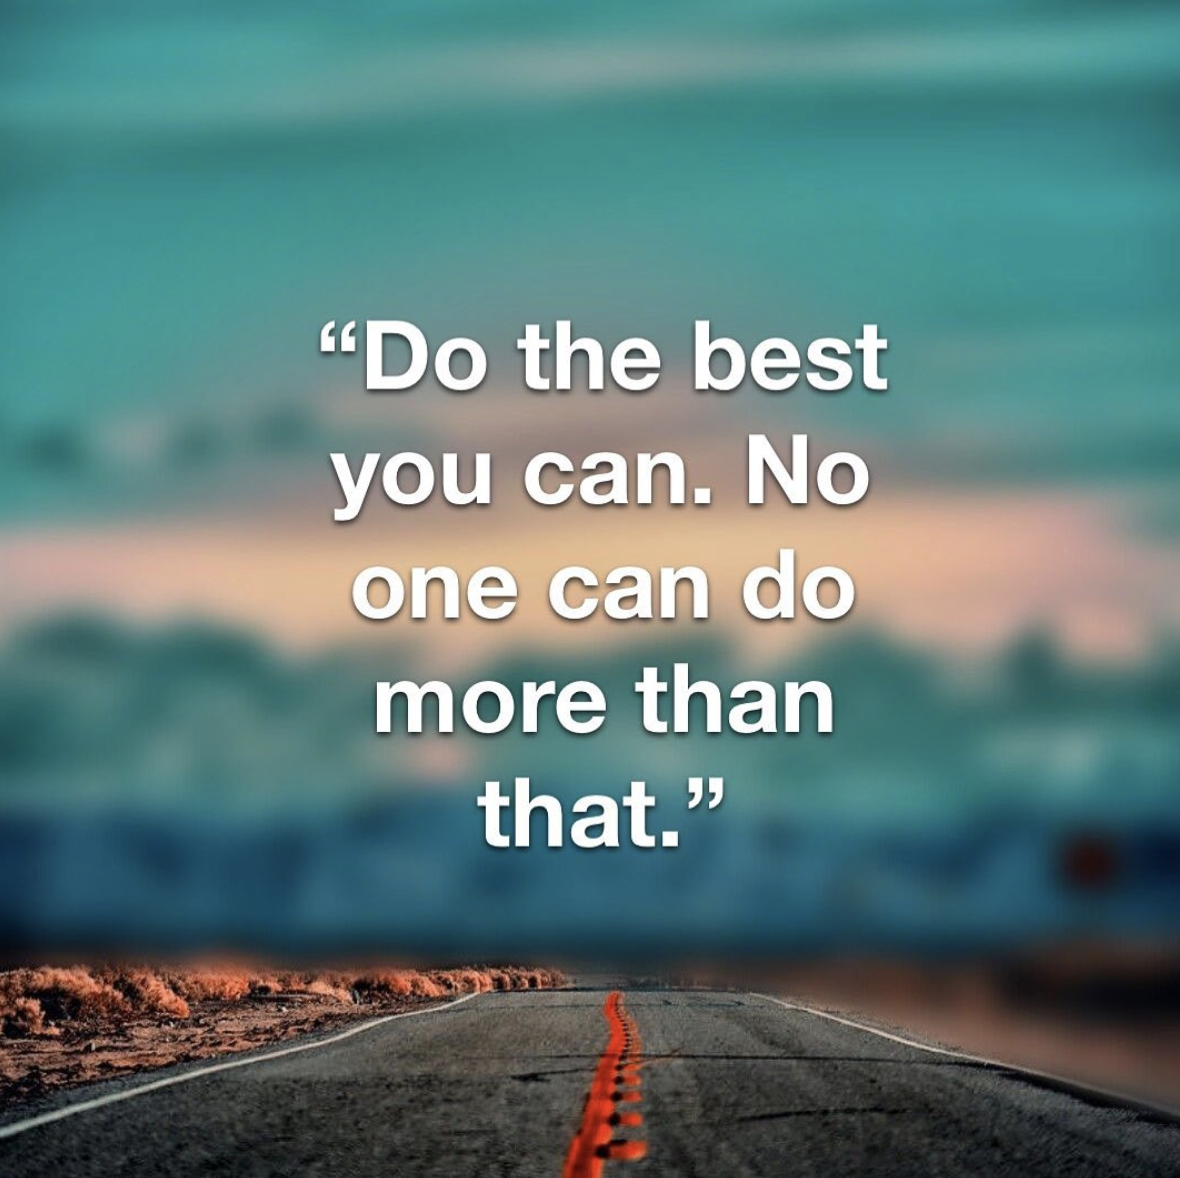 [Image] Do the best you can. No one can do more than that.